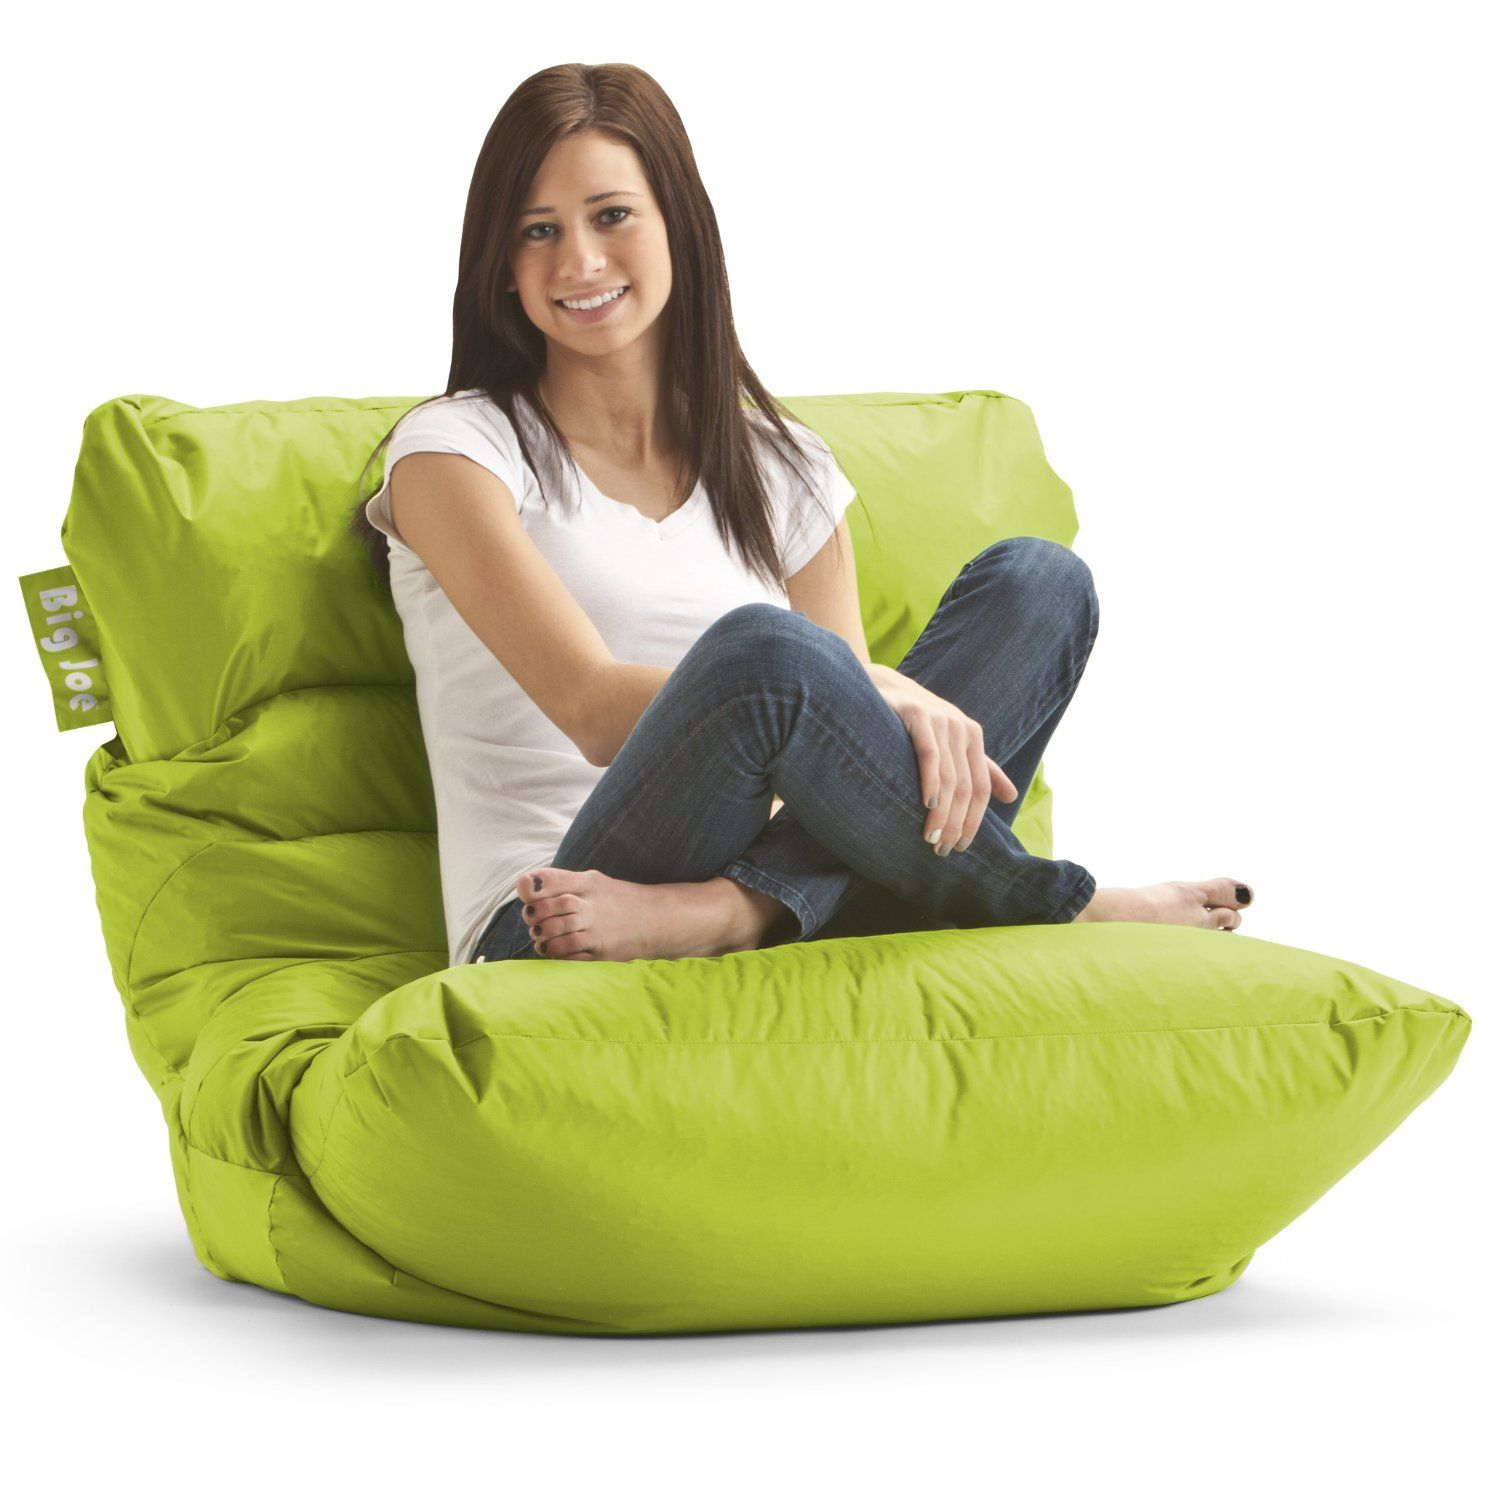 Amazon.com   Big Joe Roma Bean Bag Chair, Spicy Lime   Beanbag Chairs For  Teens